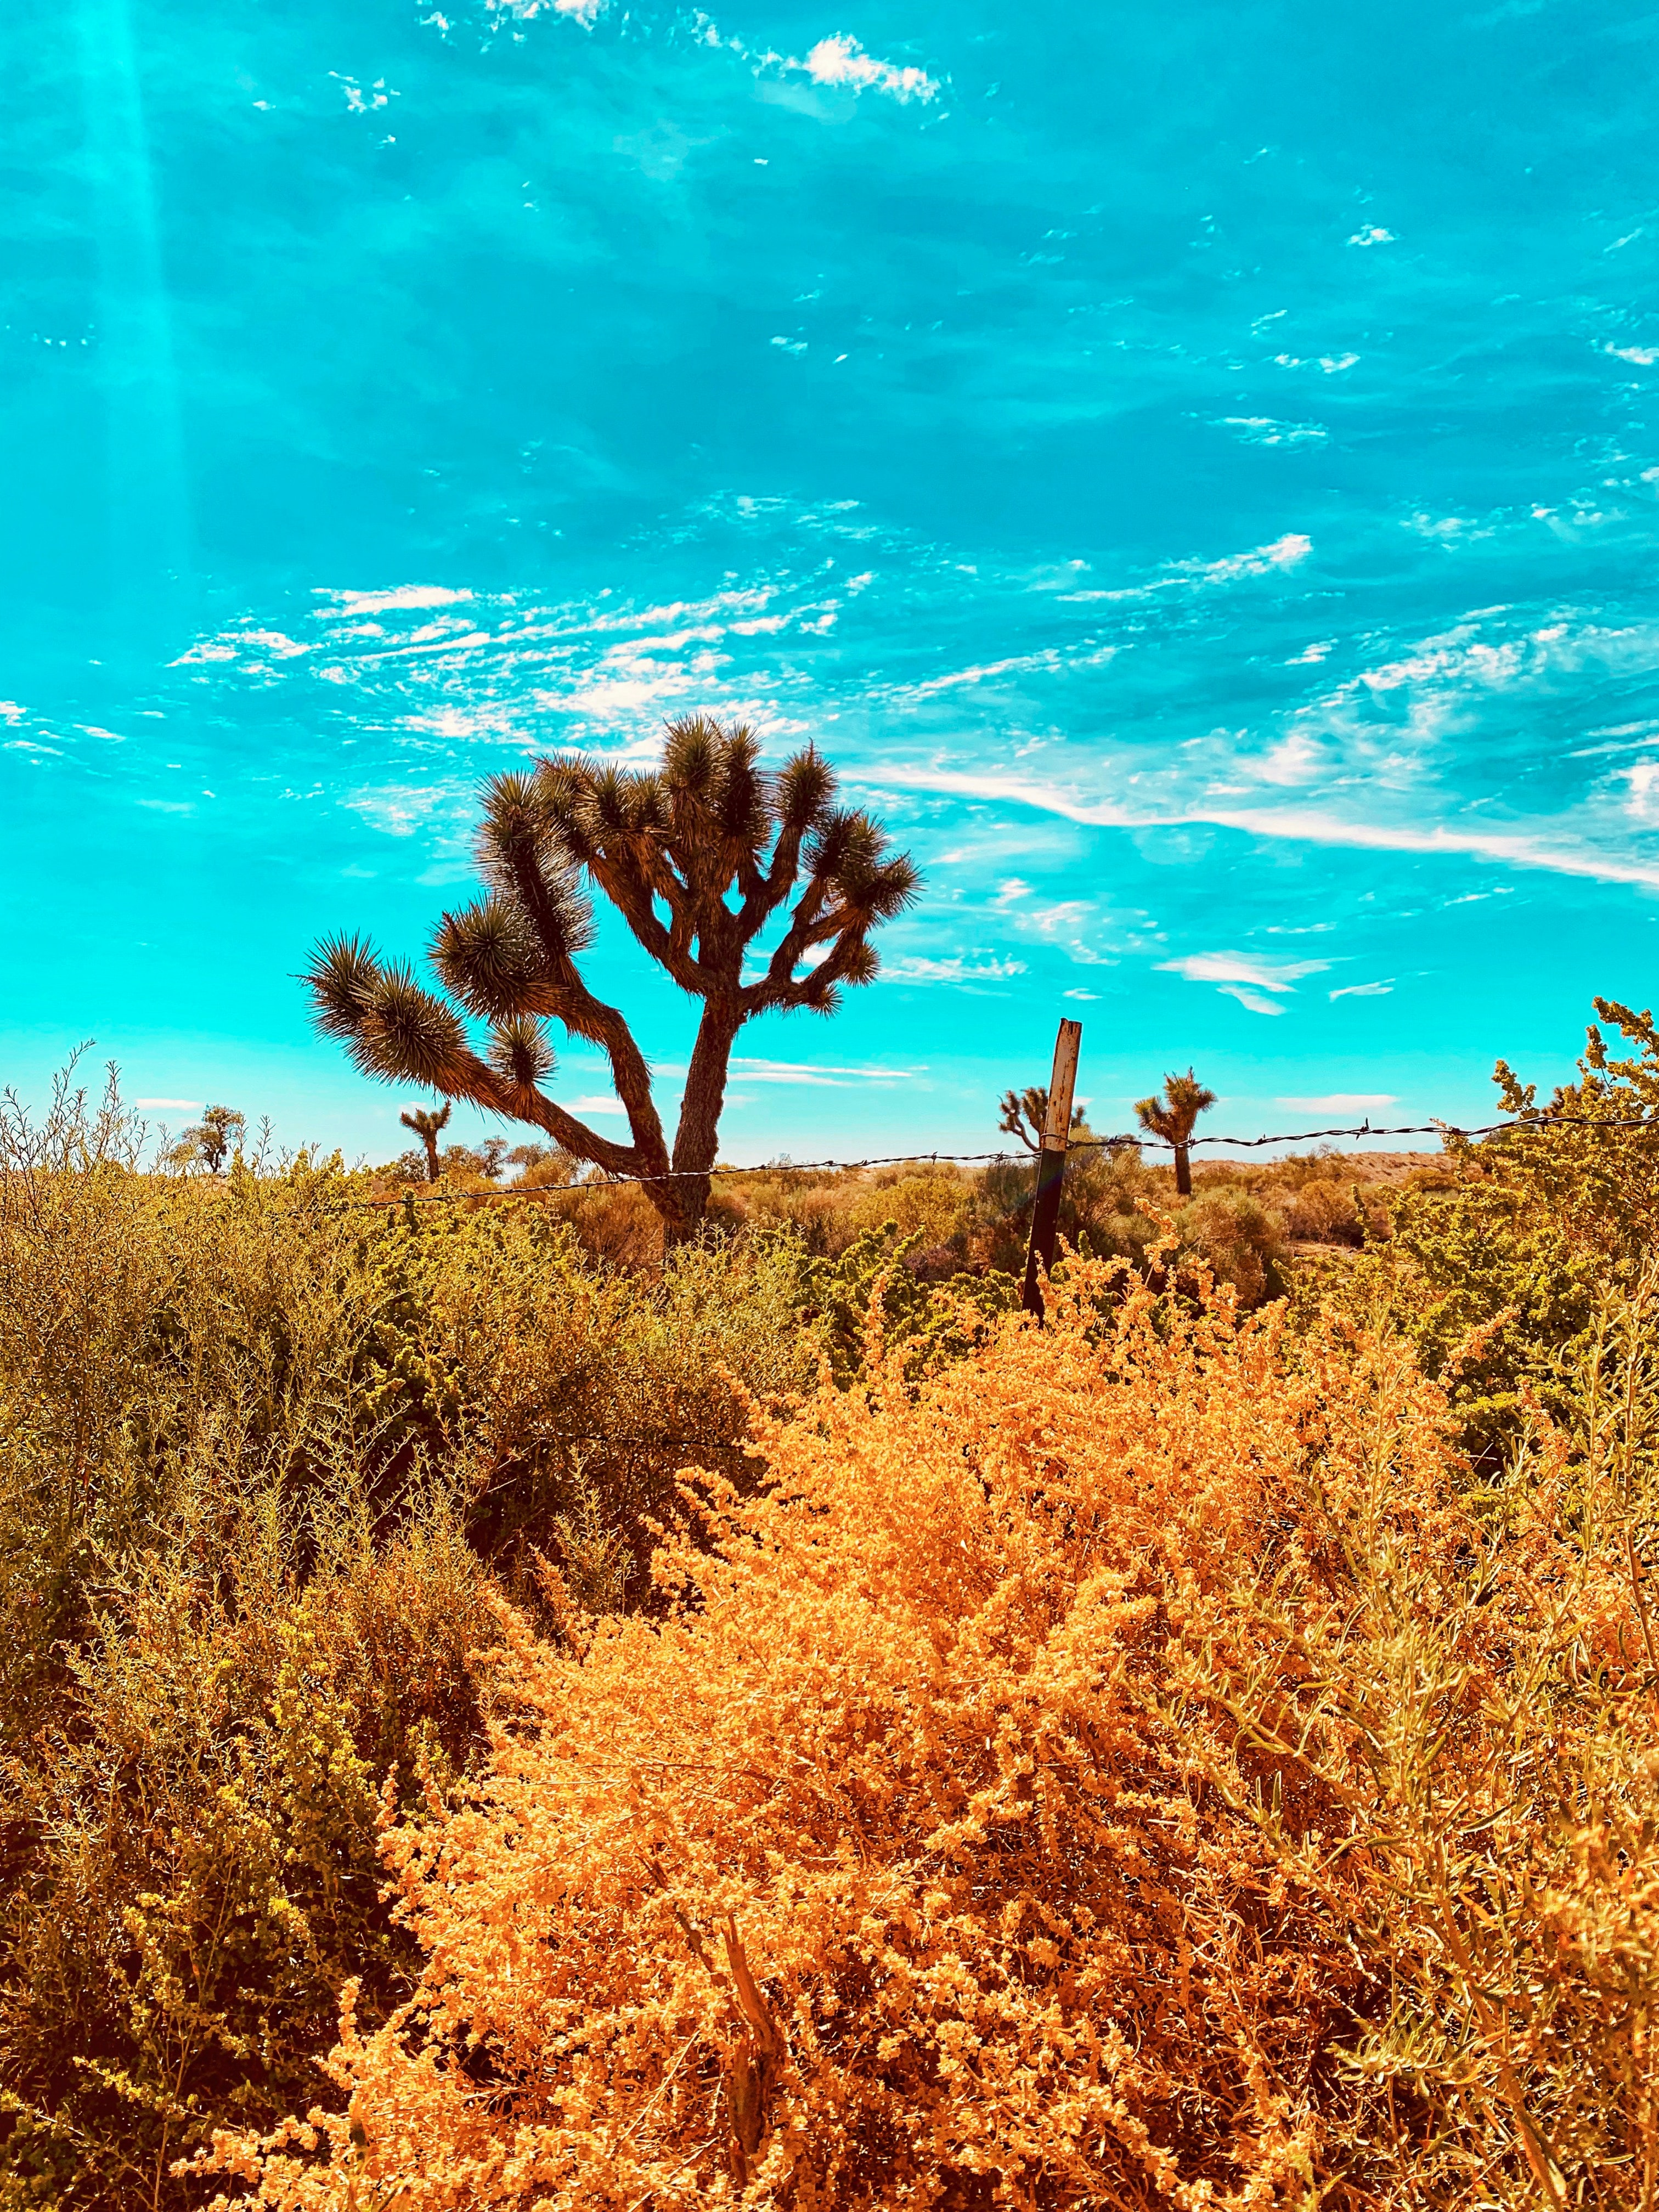 76485 download wallpaper Plants, Nature, Cactuses, Desert, Bush, Wildlife screensavers and pictures for free